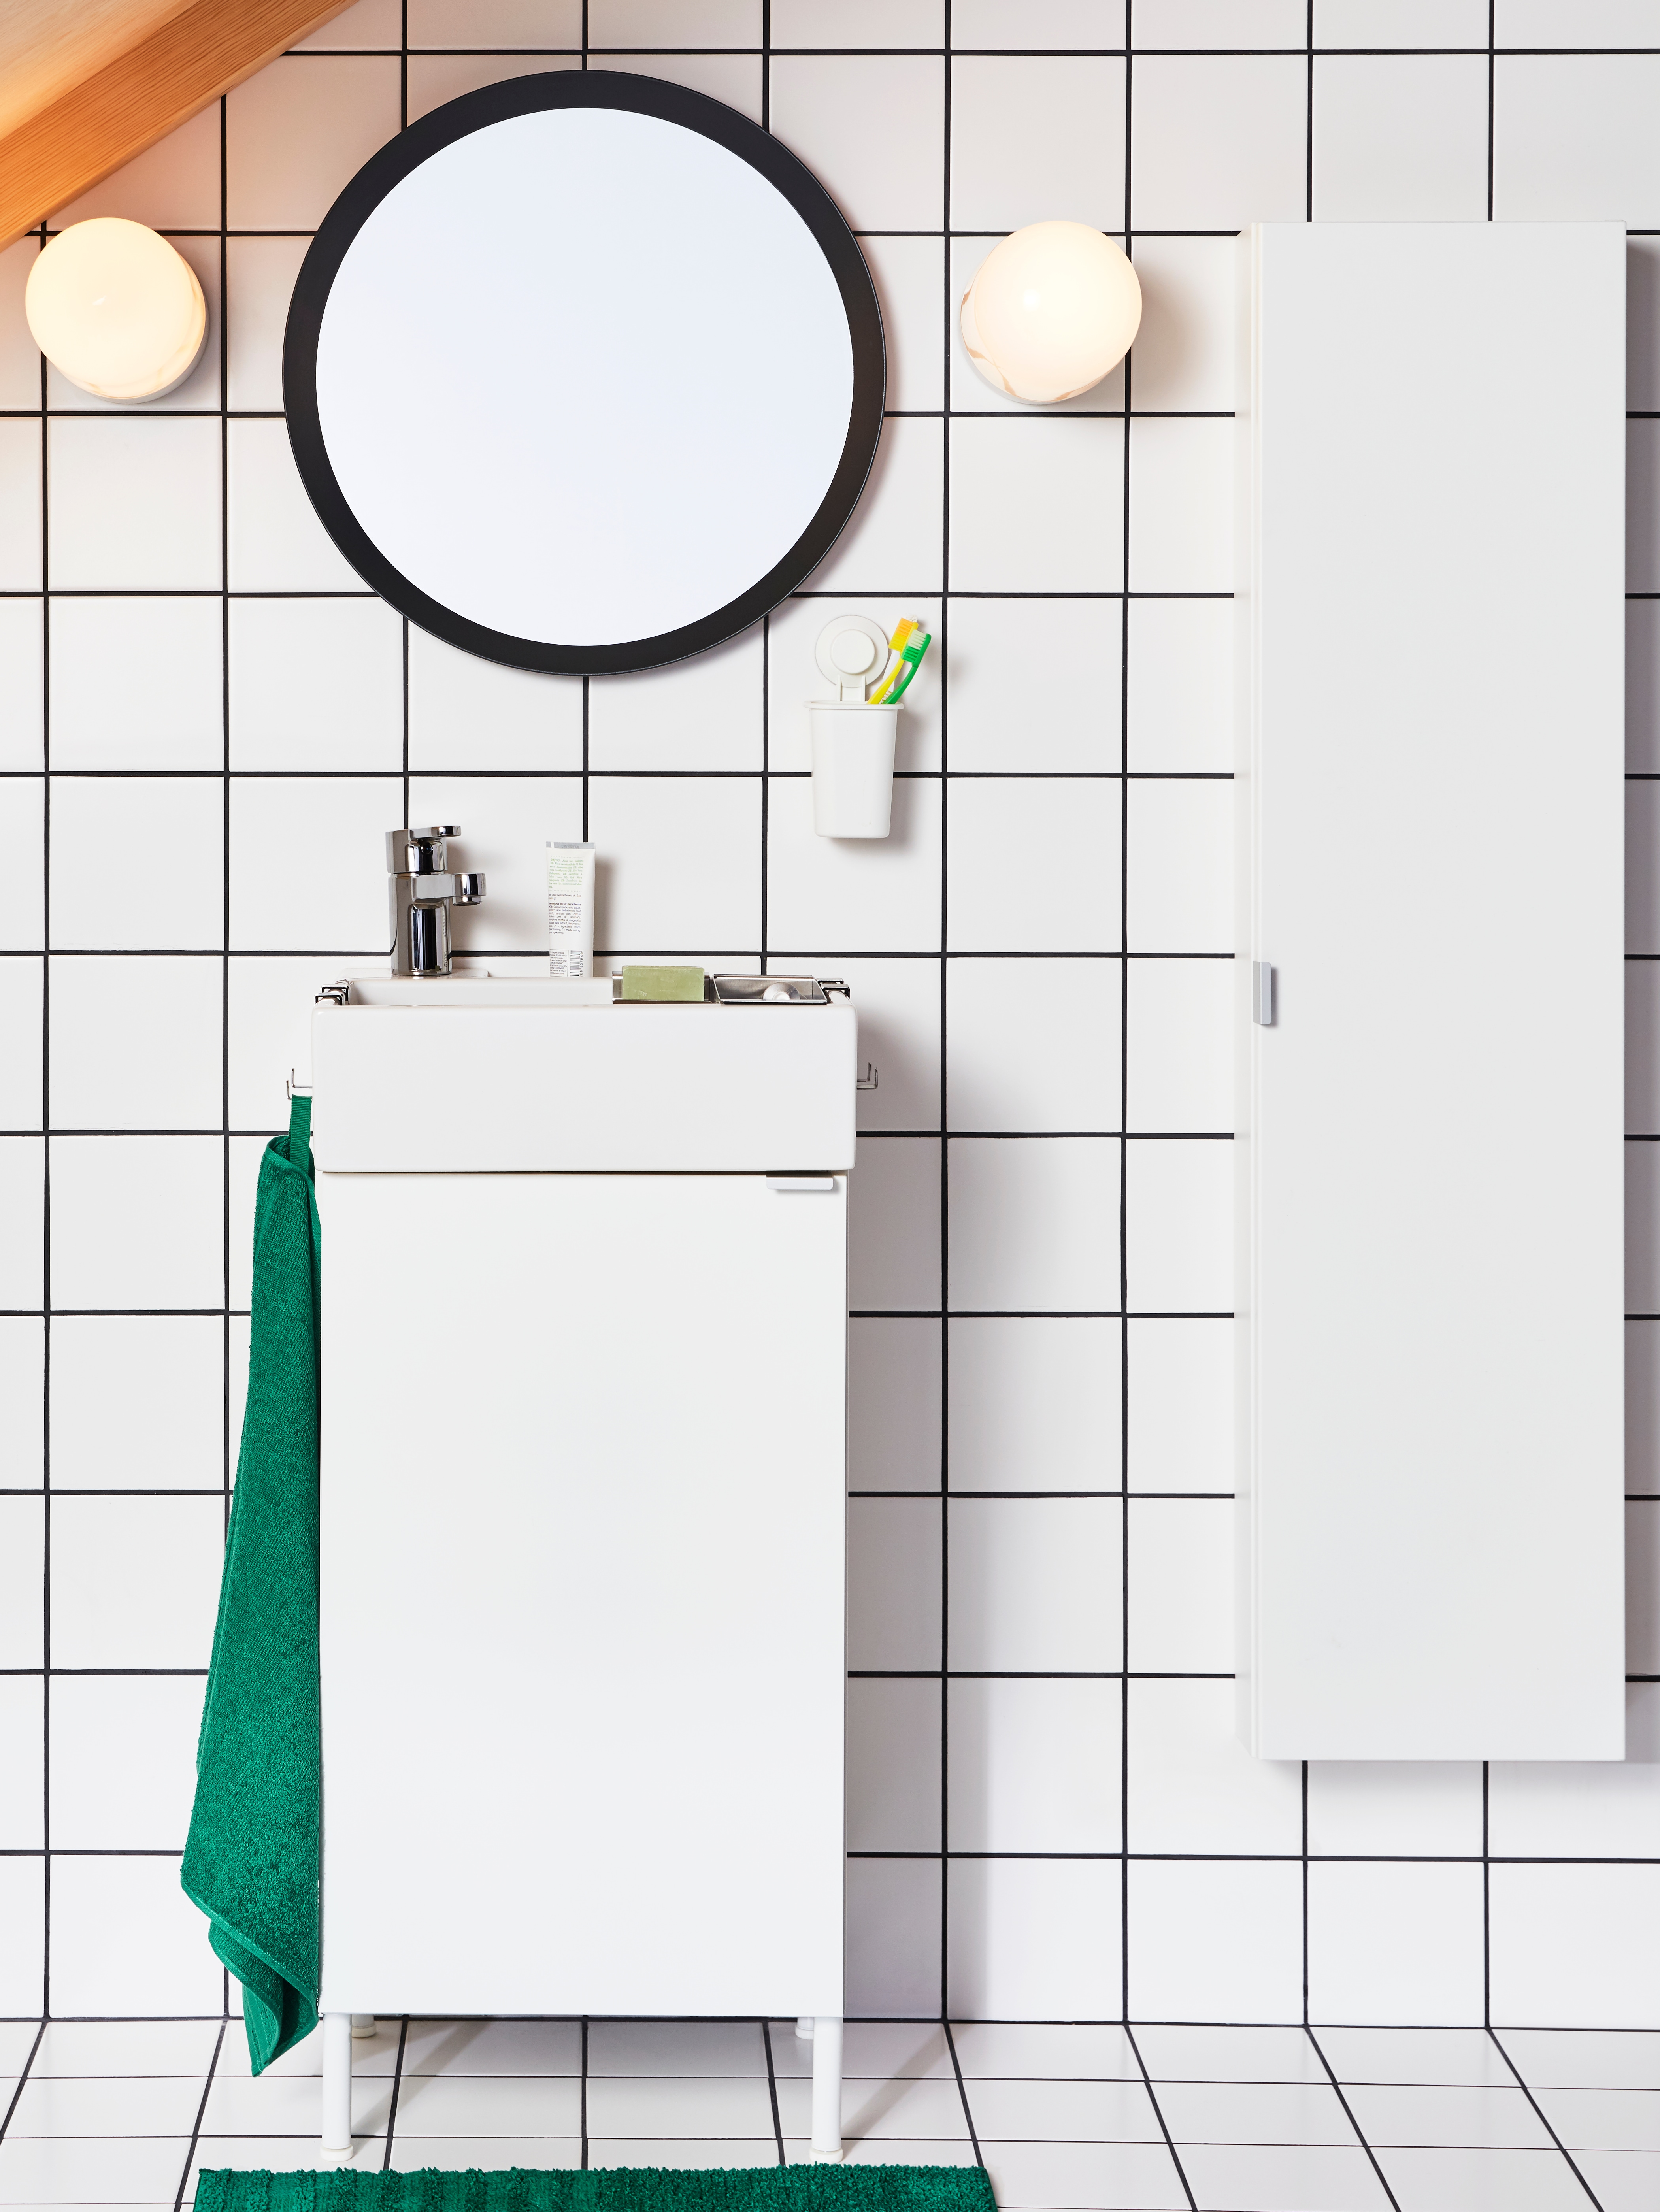 An image showing a white small-space bathroom next to a blue background with text about the IKEA bathroom planner.